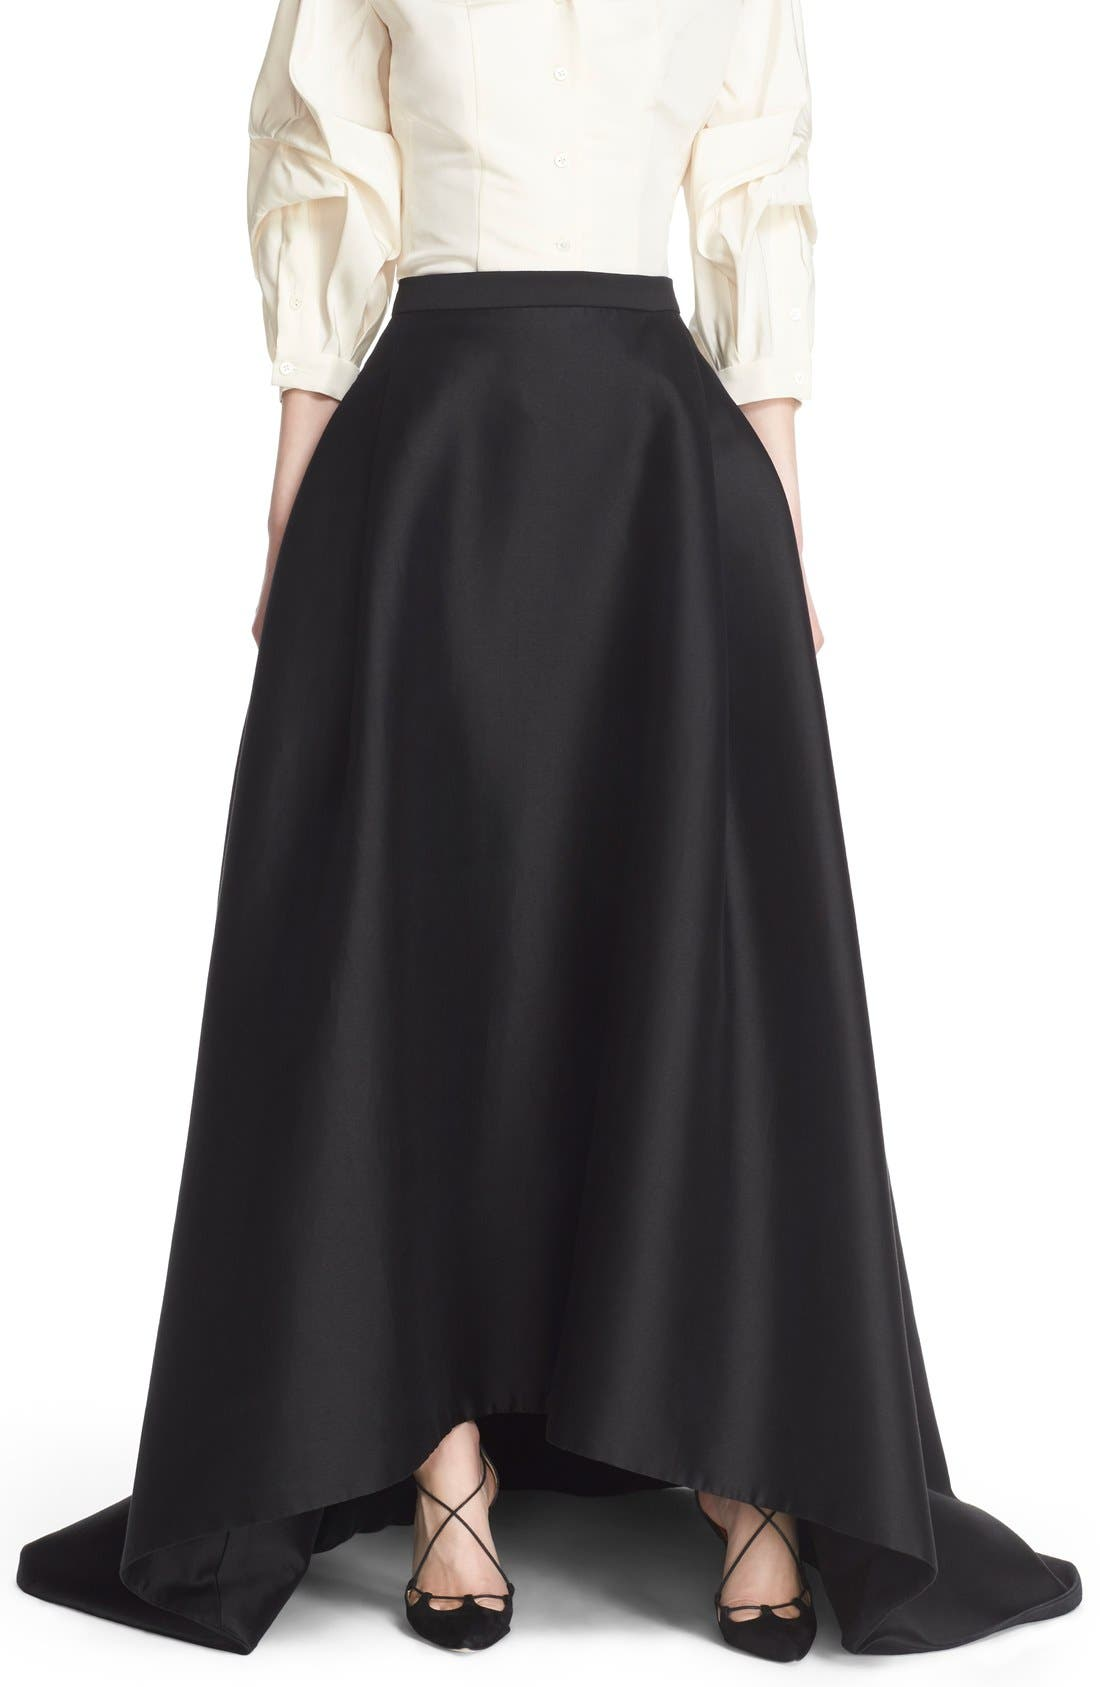 Main Image - Carolina Herrera Full Length Evening Skirt